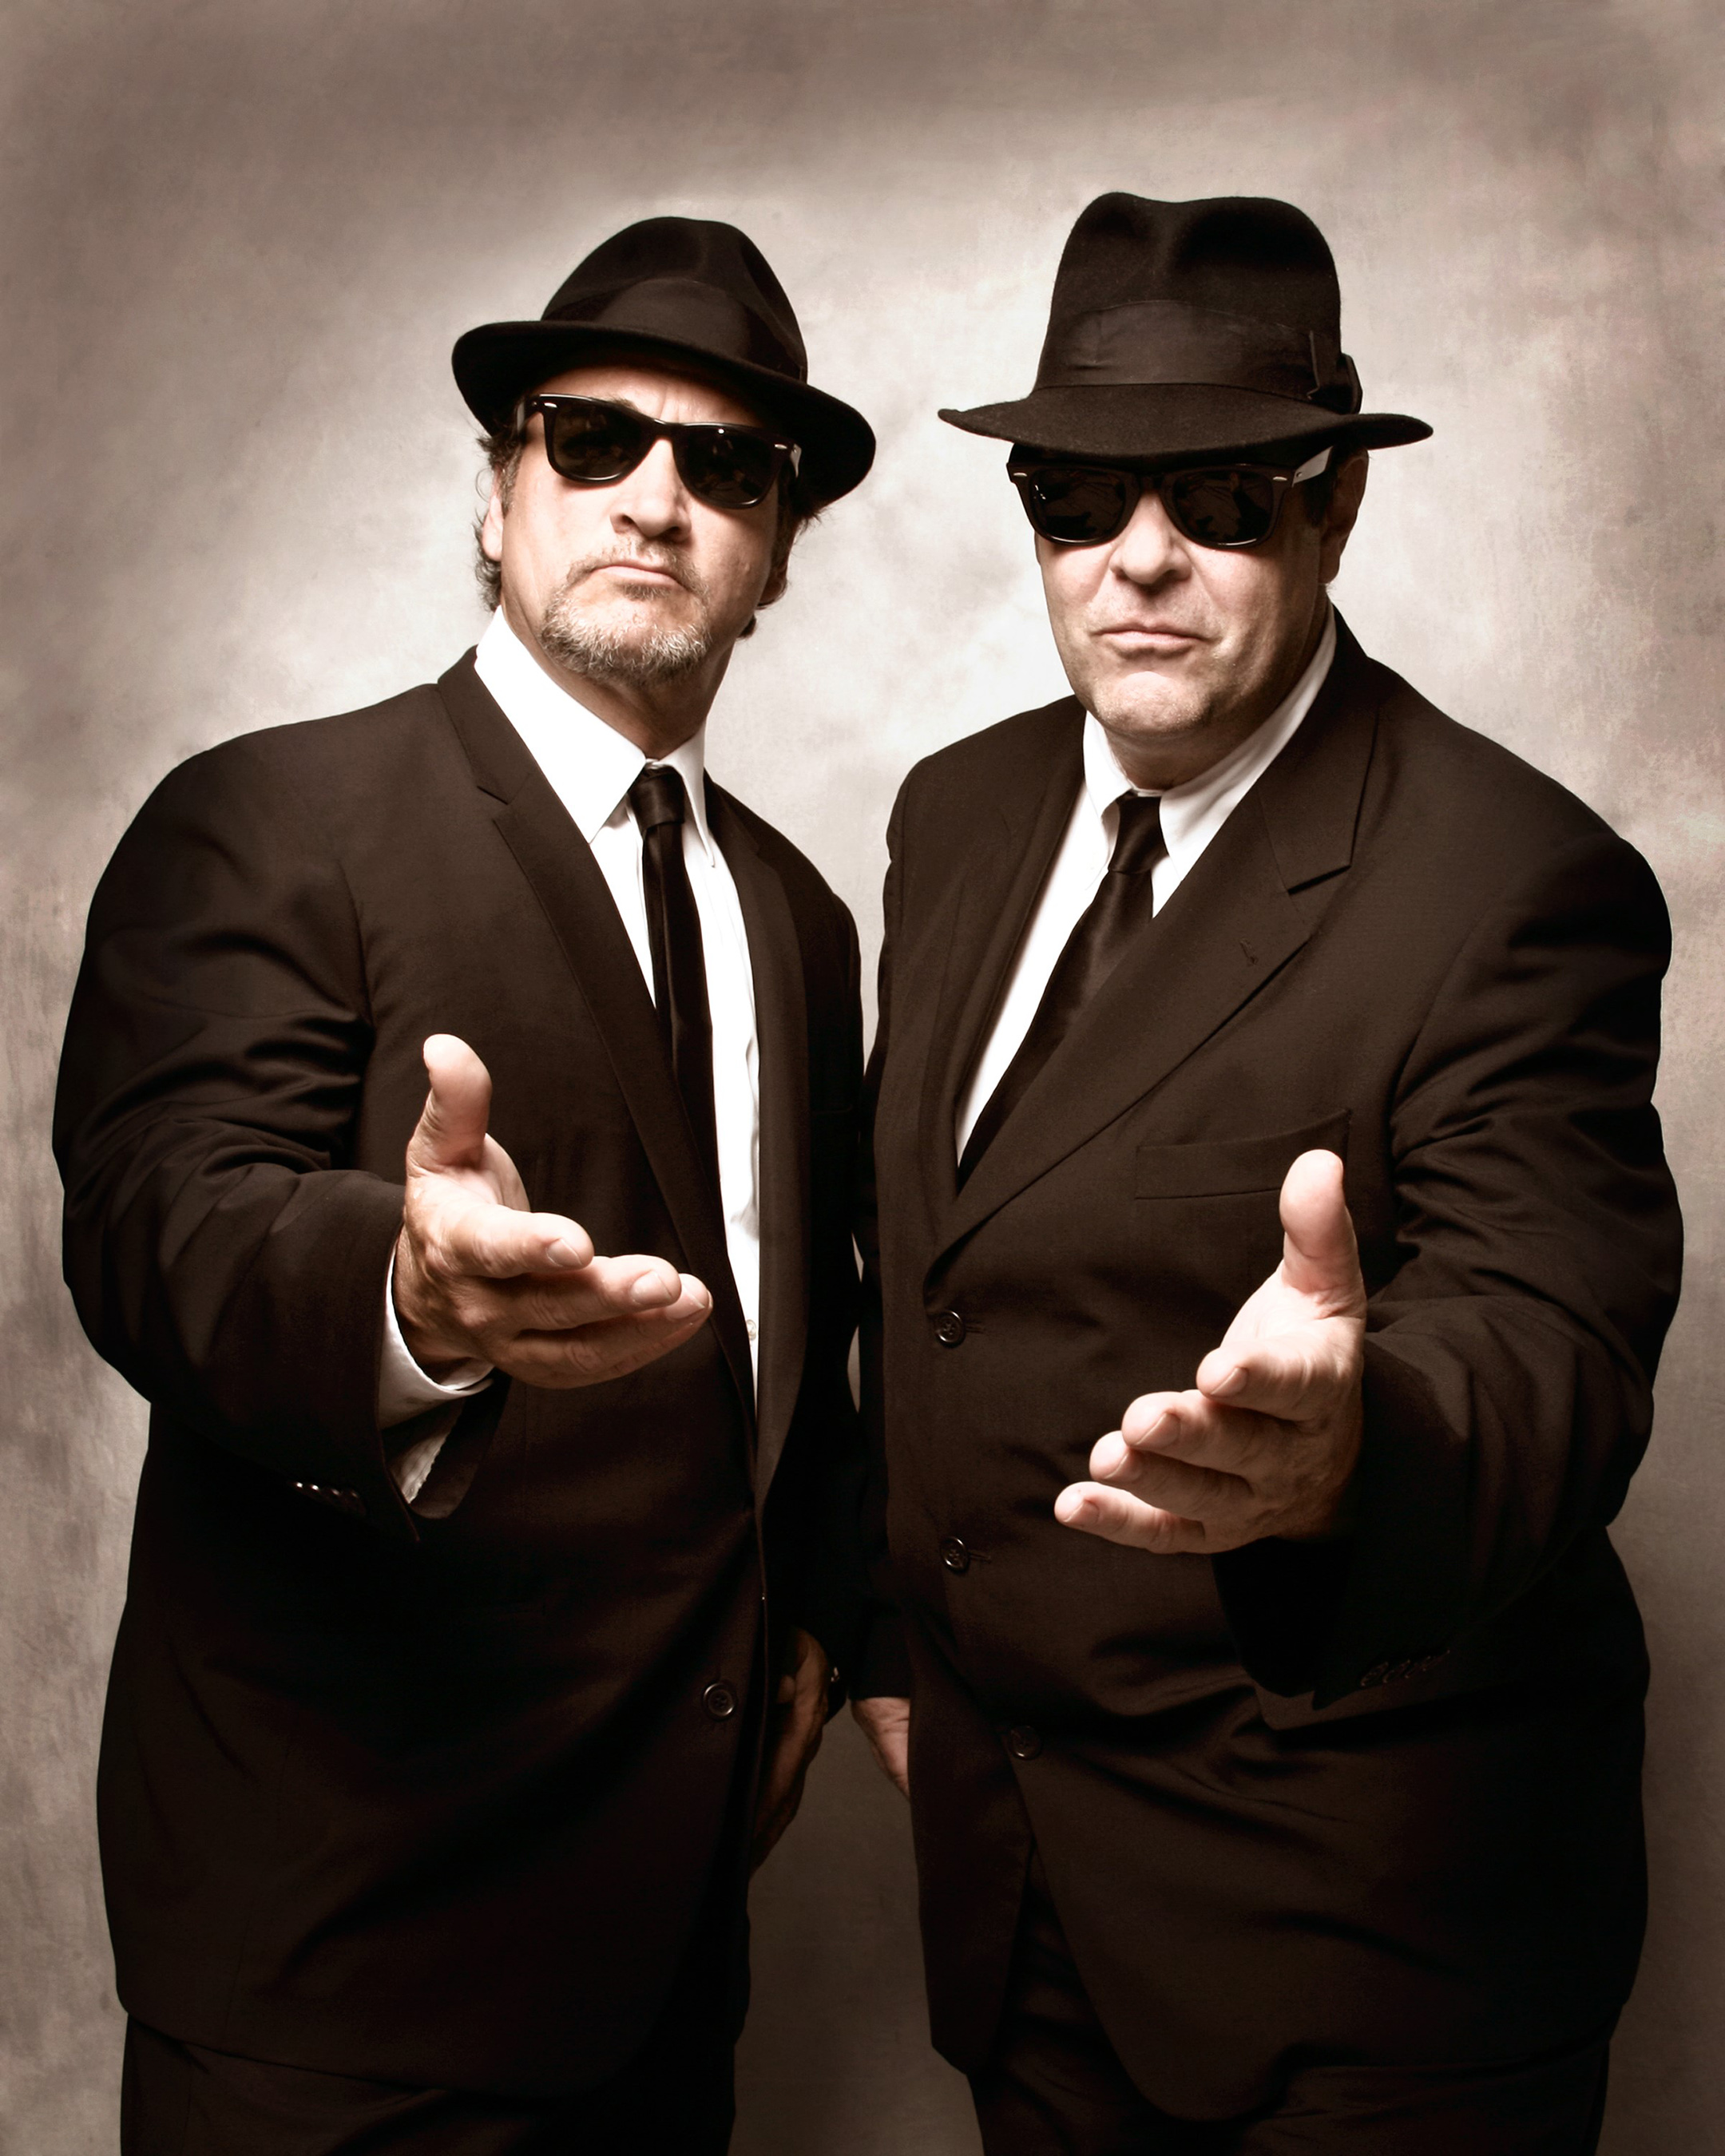 Soul men Dan Aykroyd and Jim Belushi of The Blues Brothers will perform on PBS' A CAPITOL FOURTH, broadcast live from the West Lawn of the U.S. Capitol Tuesday, July 4 from 8.00 to 9:30 p.m. ET.